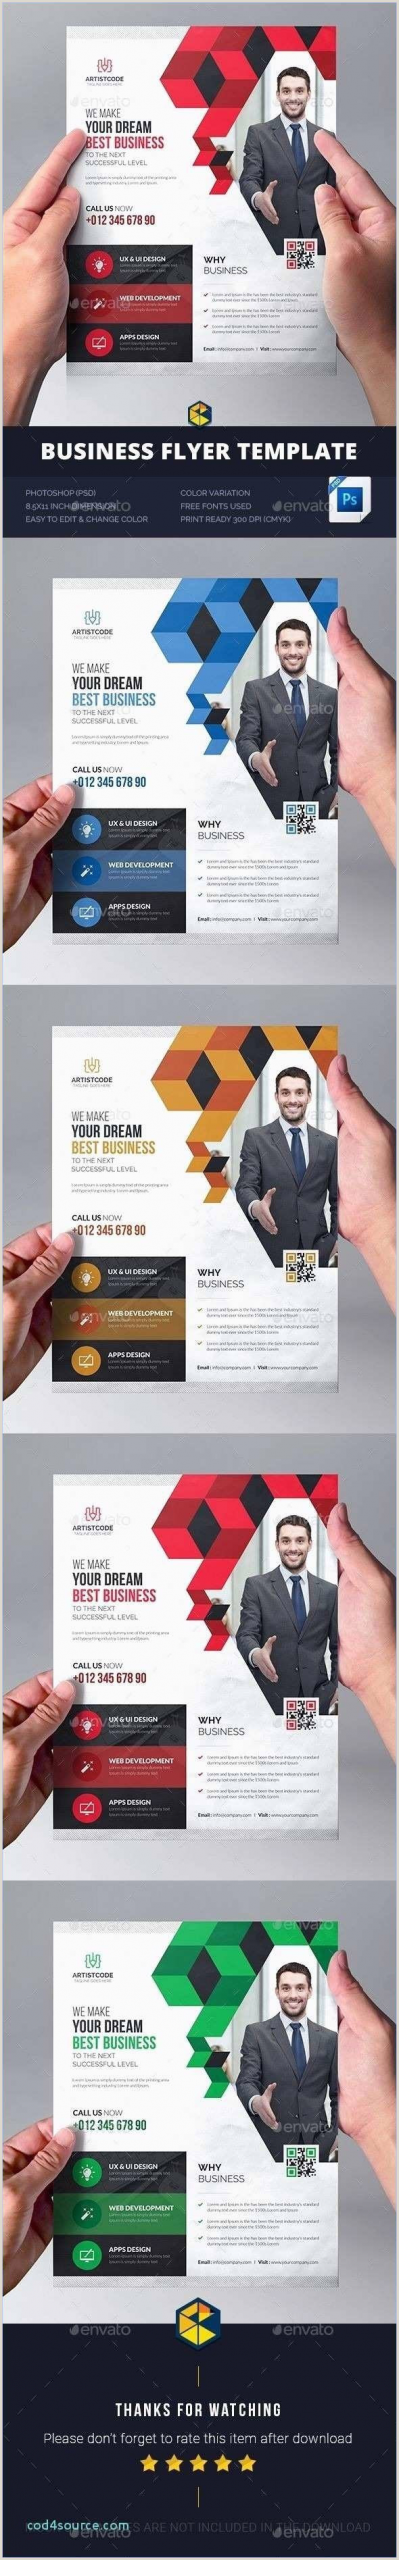 Unique Business Card Printers Business Card Template Apocalomegaproductions